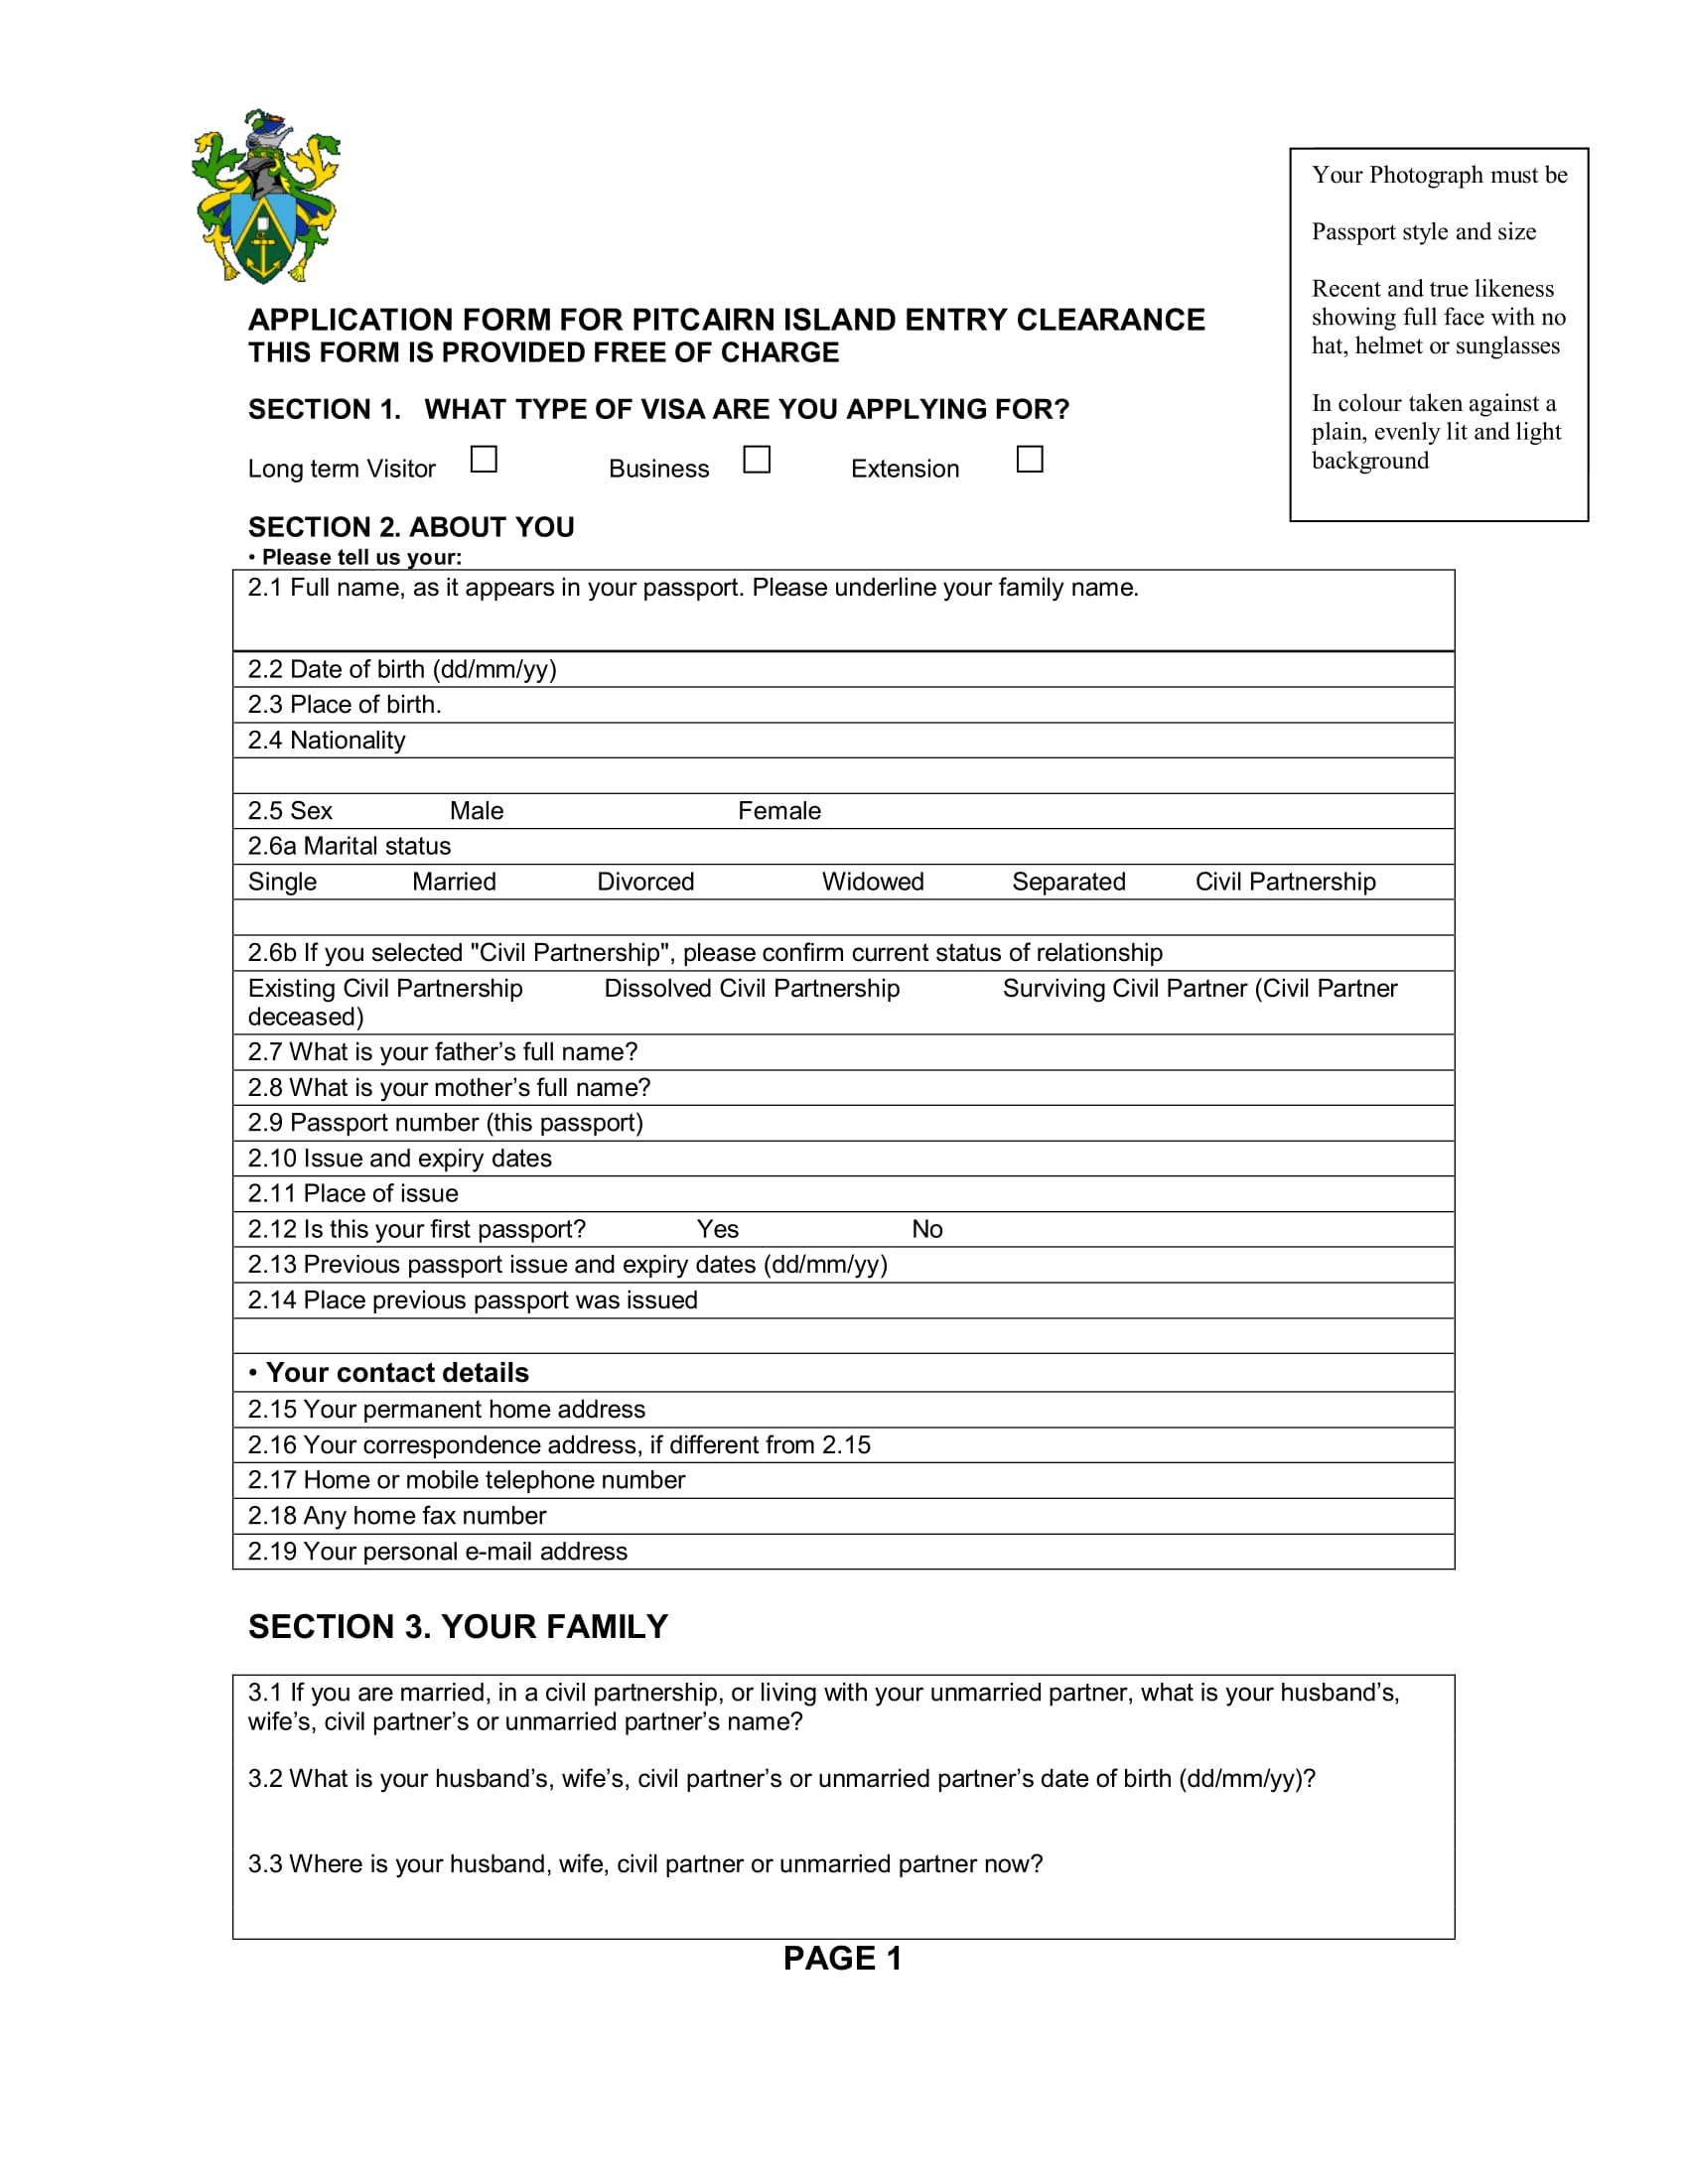 entry clearance application form 1